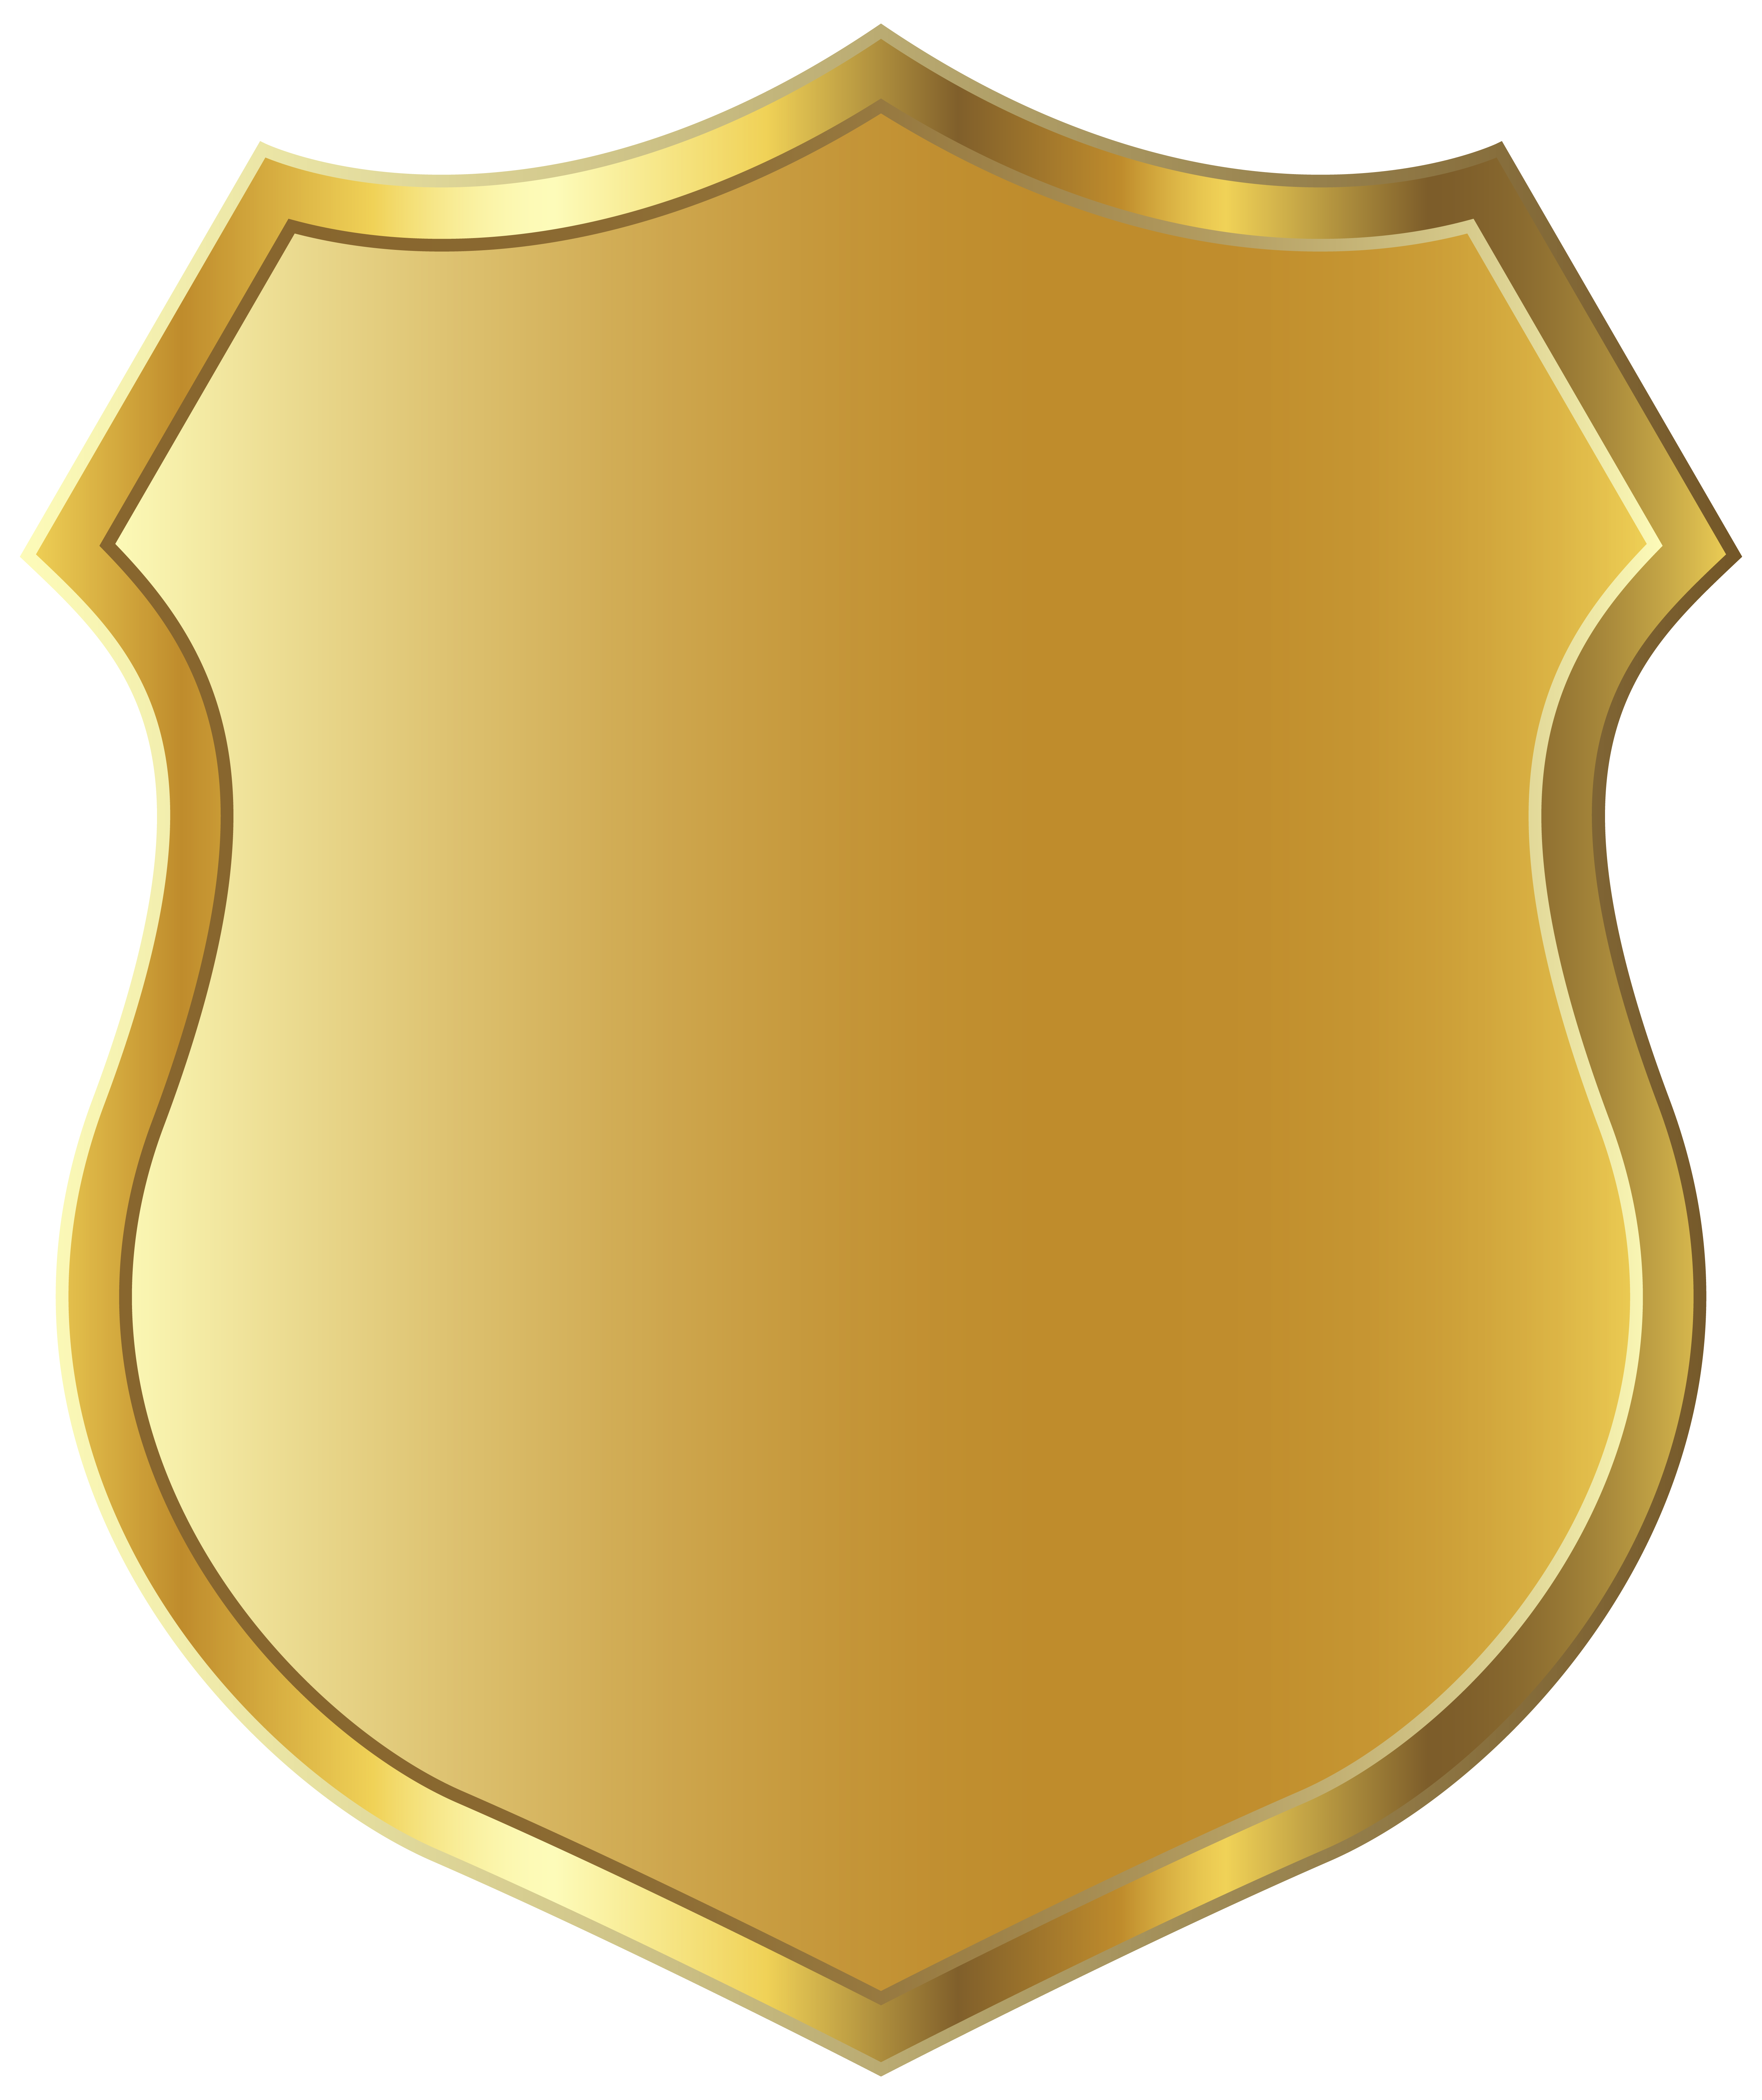 Clipart shield grunge. Golden badge template png